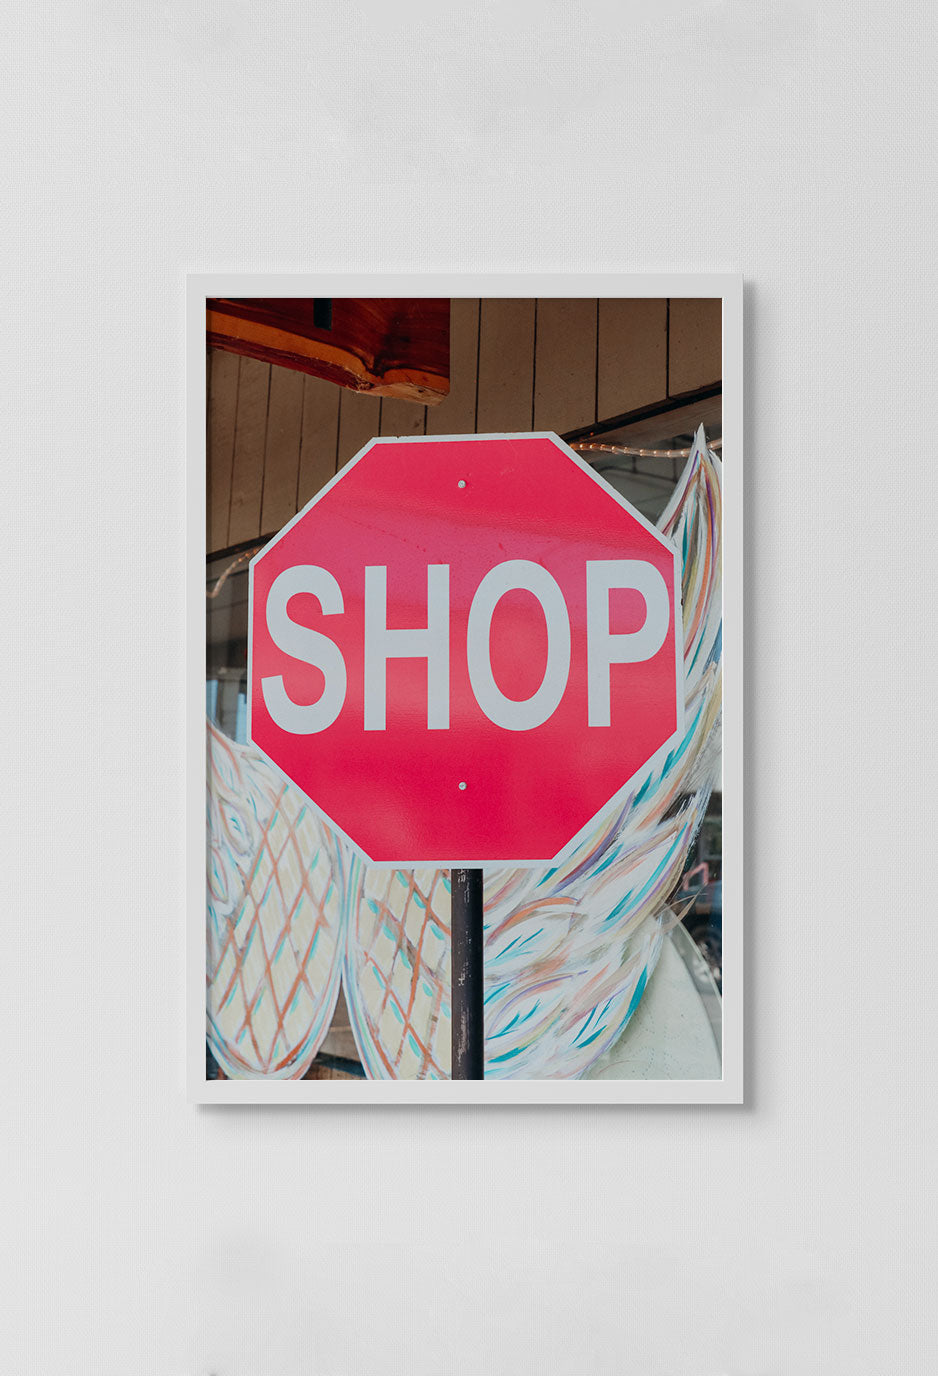 image of red sign with the words SHOP in white with wings in background in white frame on white wall.